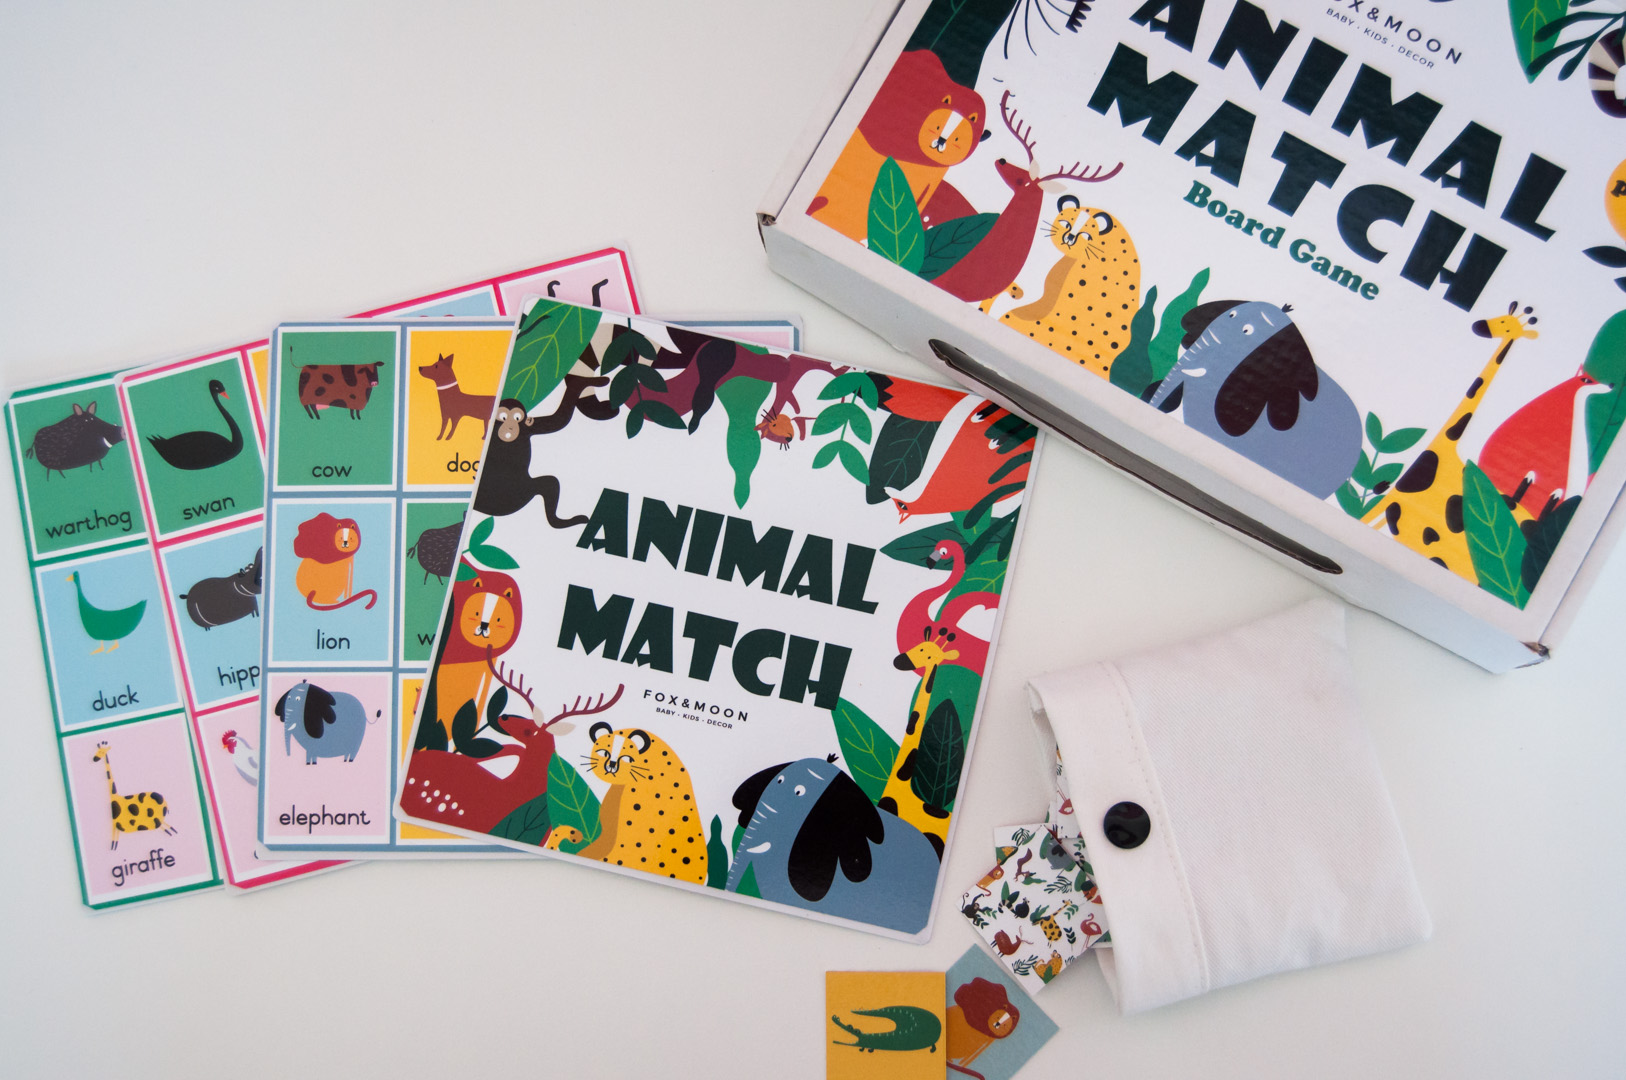 Animal Match Board Game